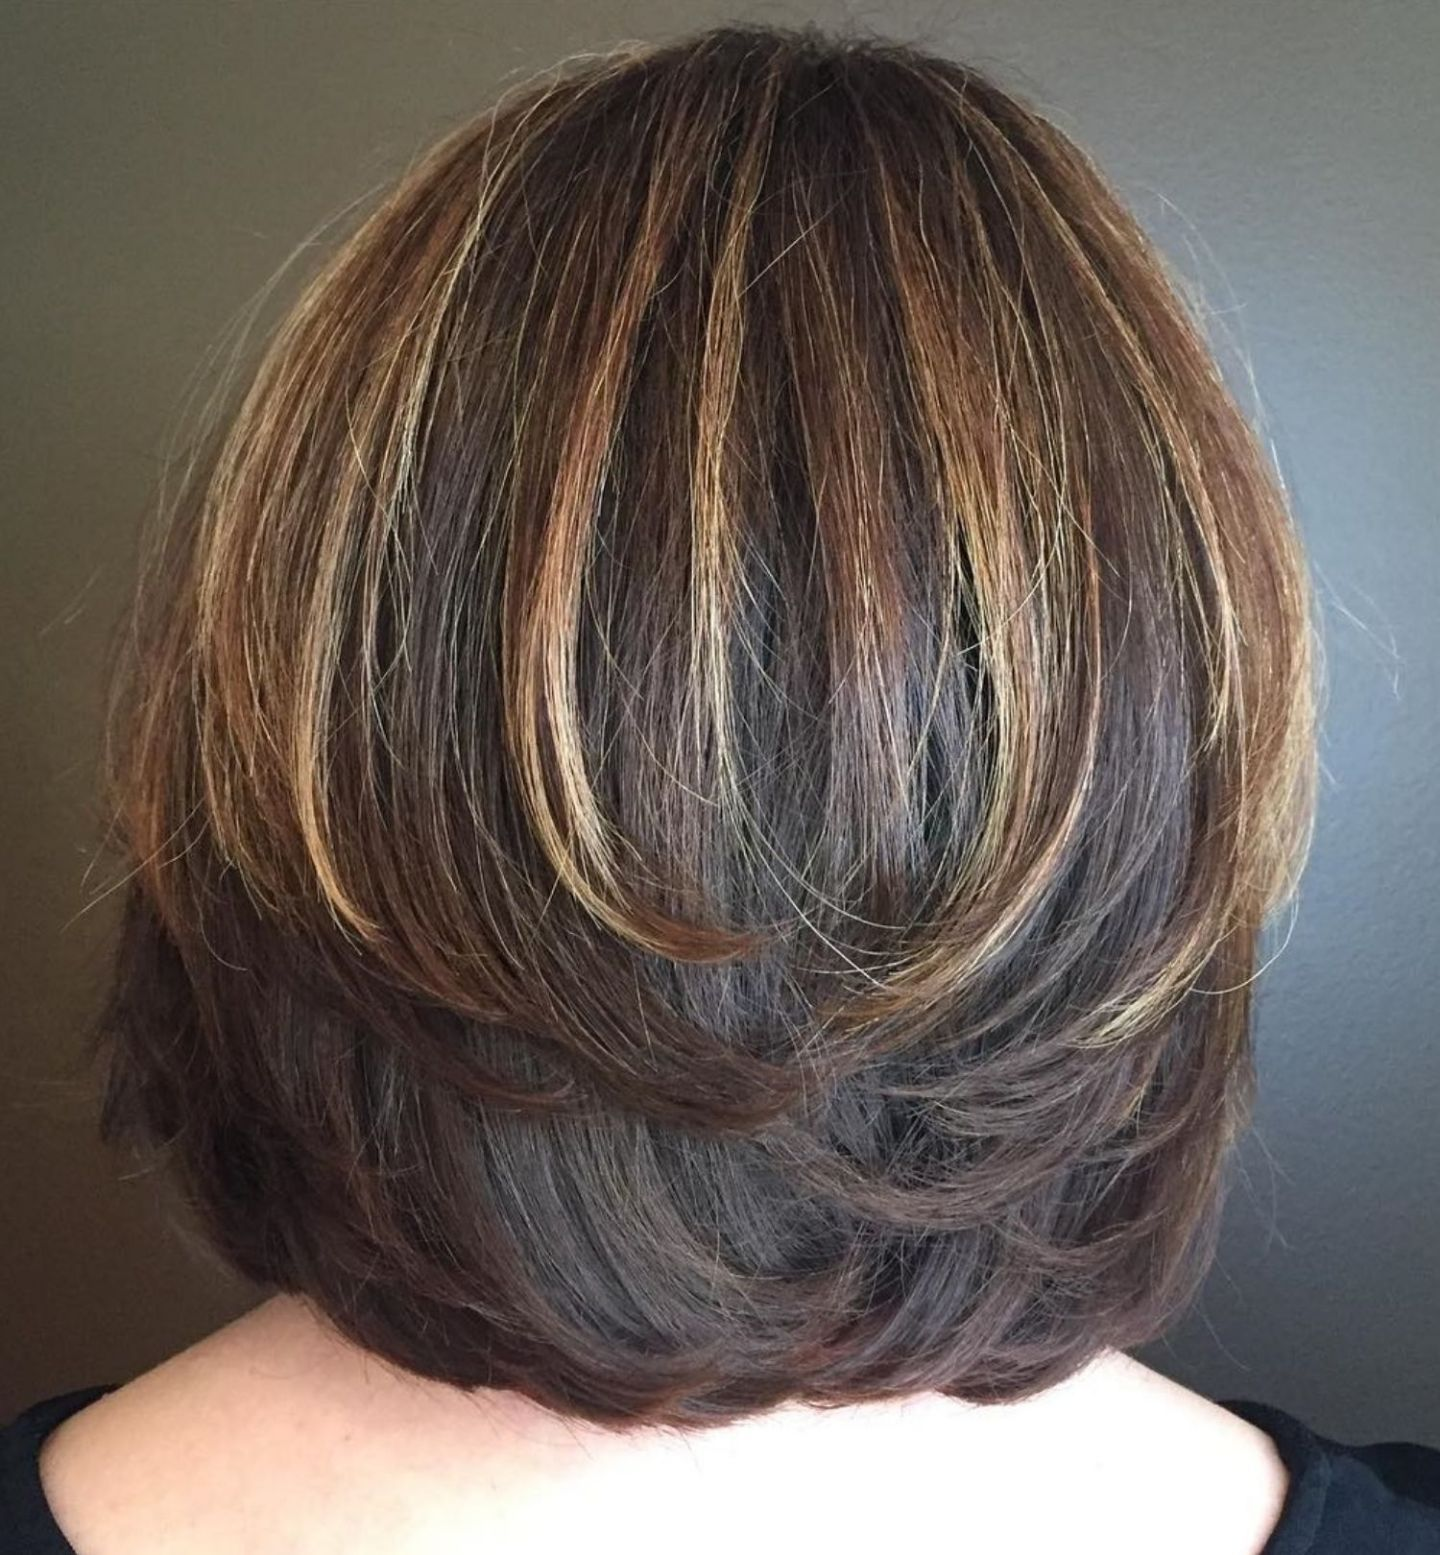 Pin On Hair Styles For Women Over 60